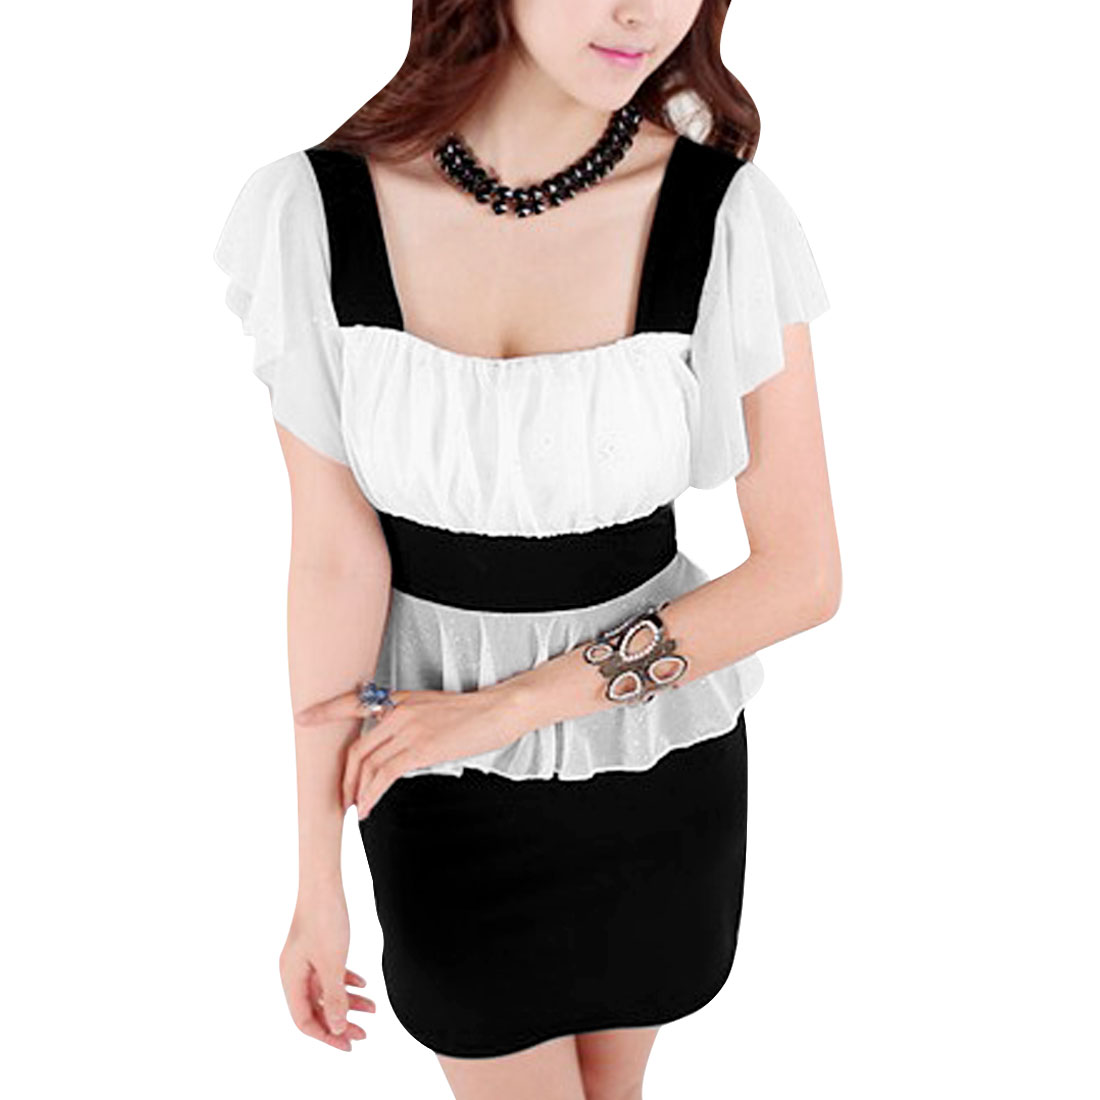 Women Square Neck Pullover Splice Peplum Dress White Black XS